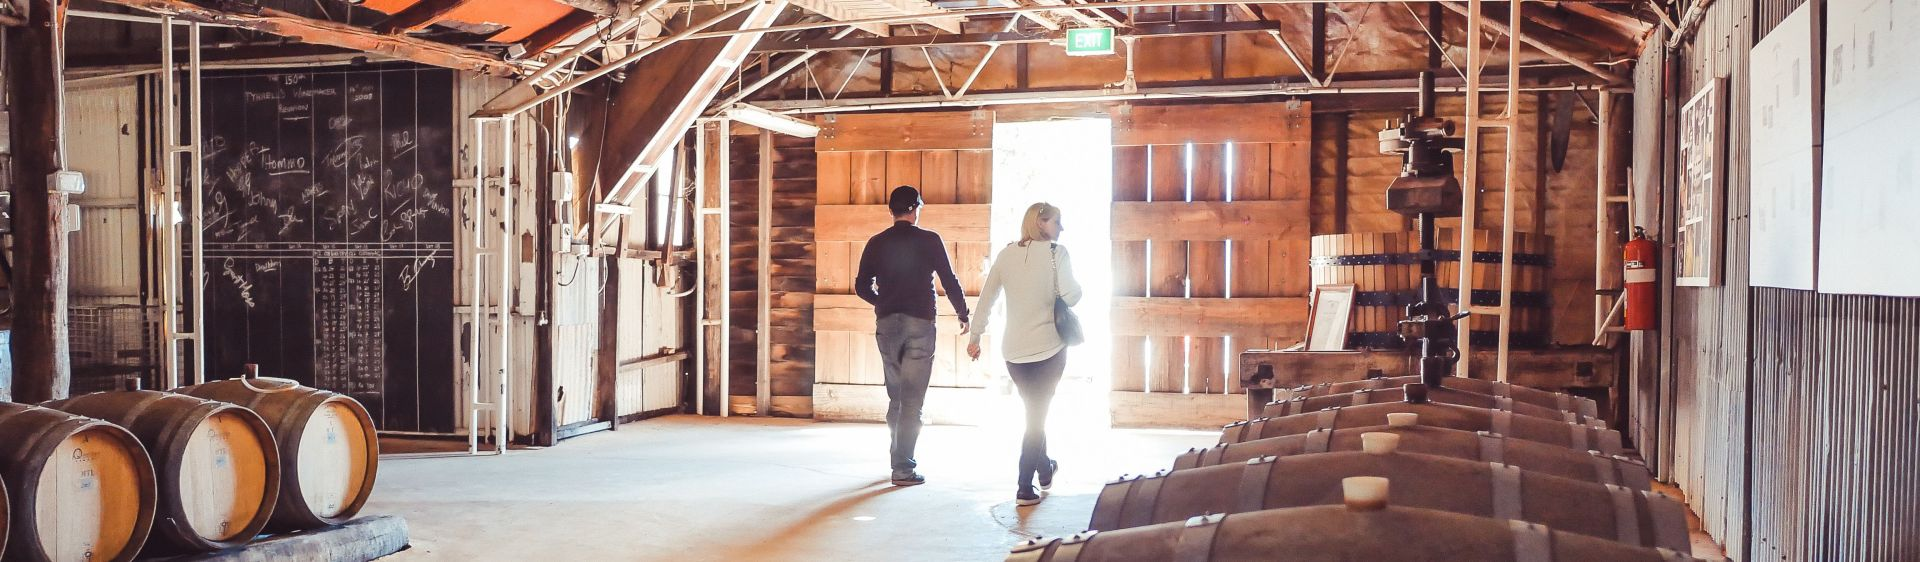 Couple touring inside Tyrrell's old winery, Pokolbin, Hunter Valley